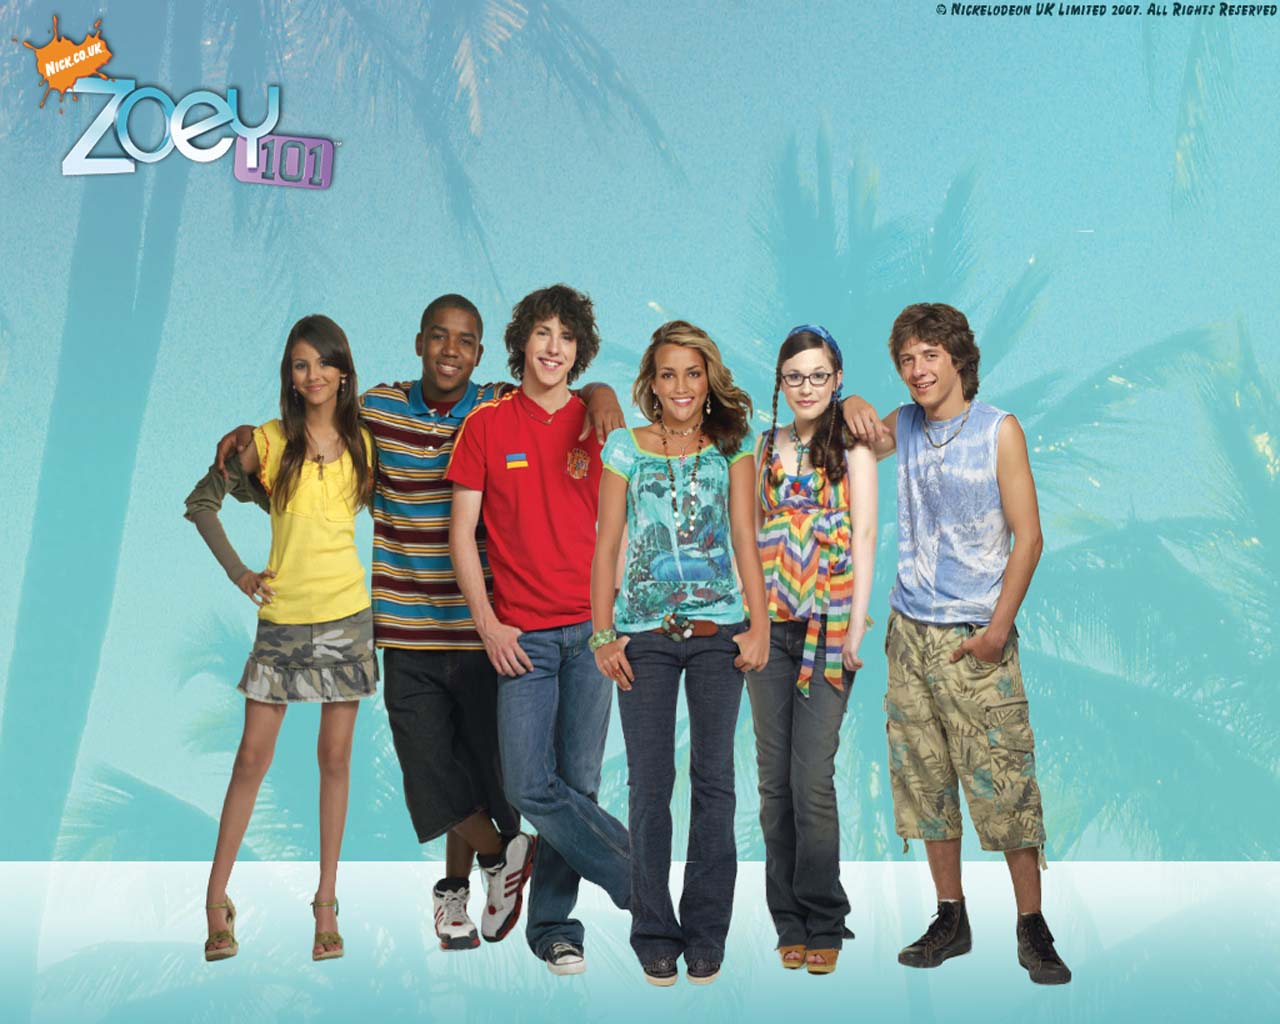 Zoey 101 on Pinterest | Matthew Underwood, Icarly Cast and Hannah Montana